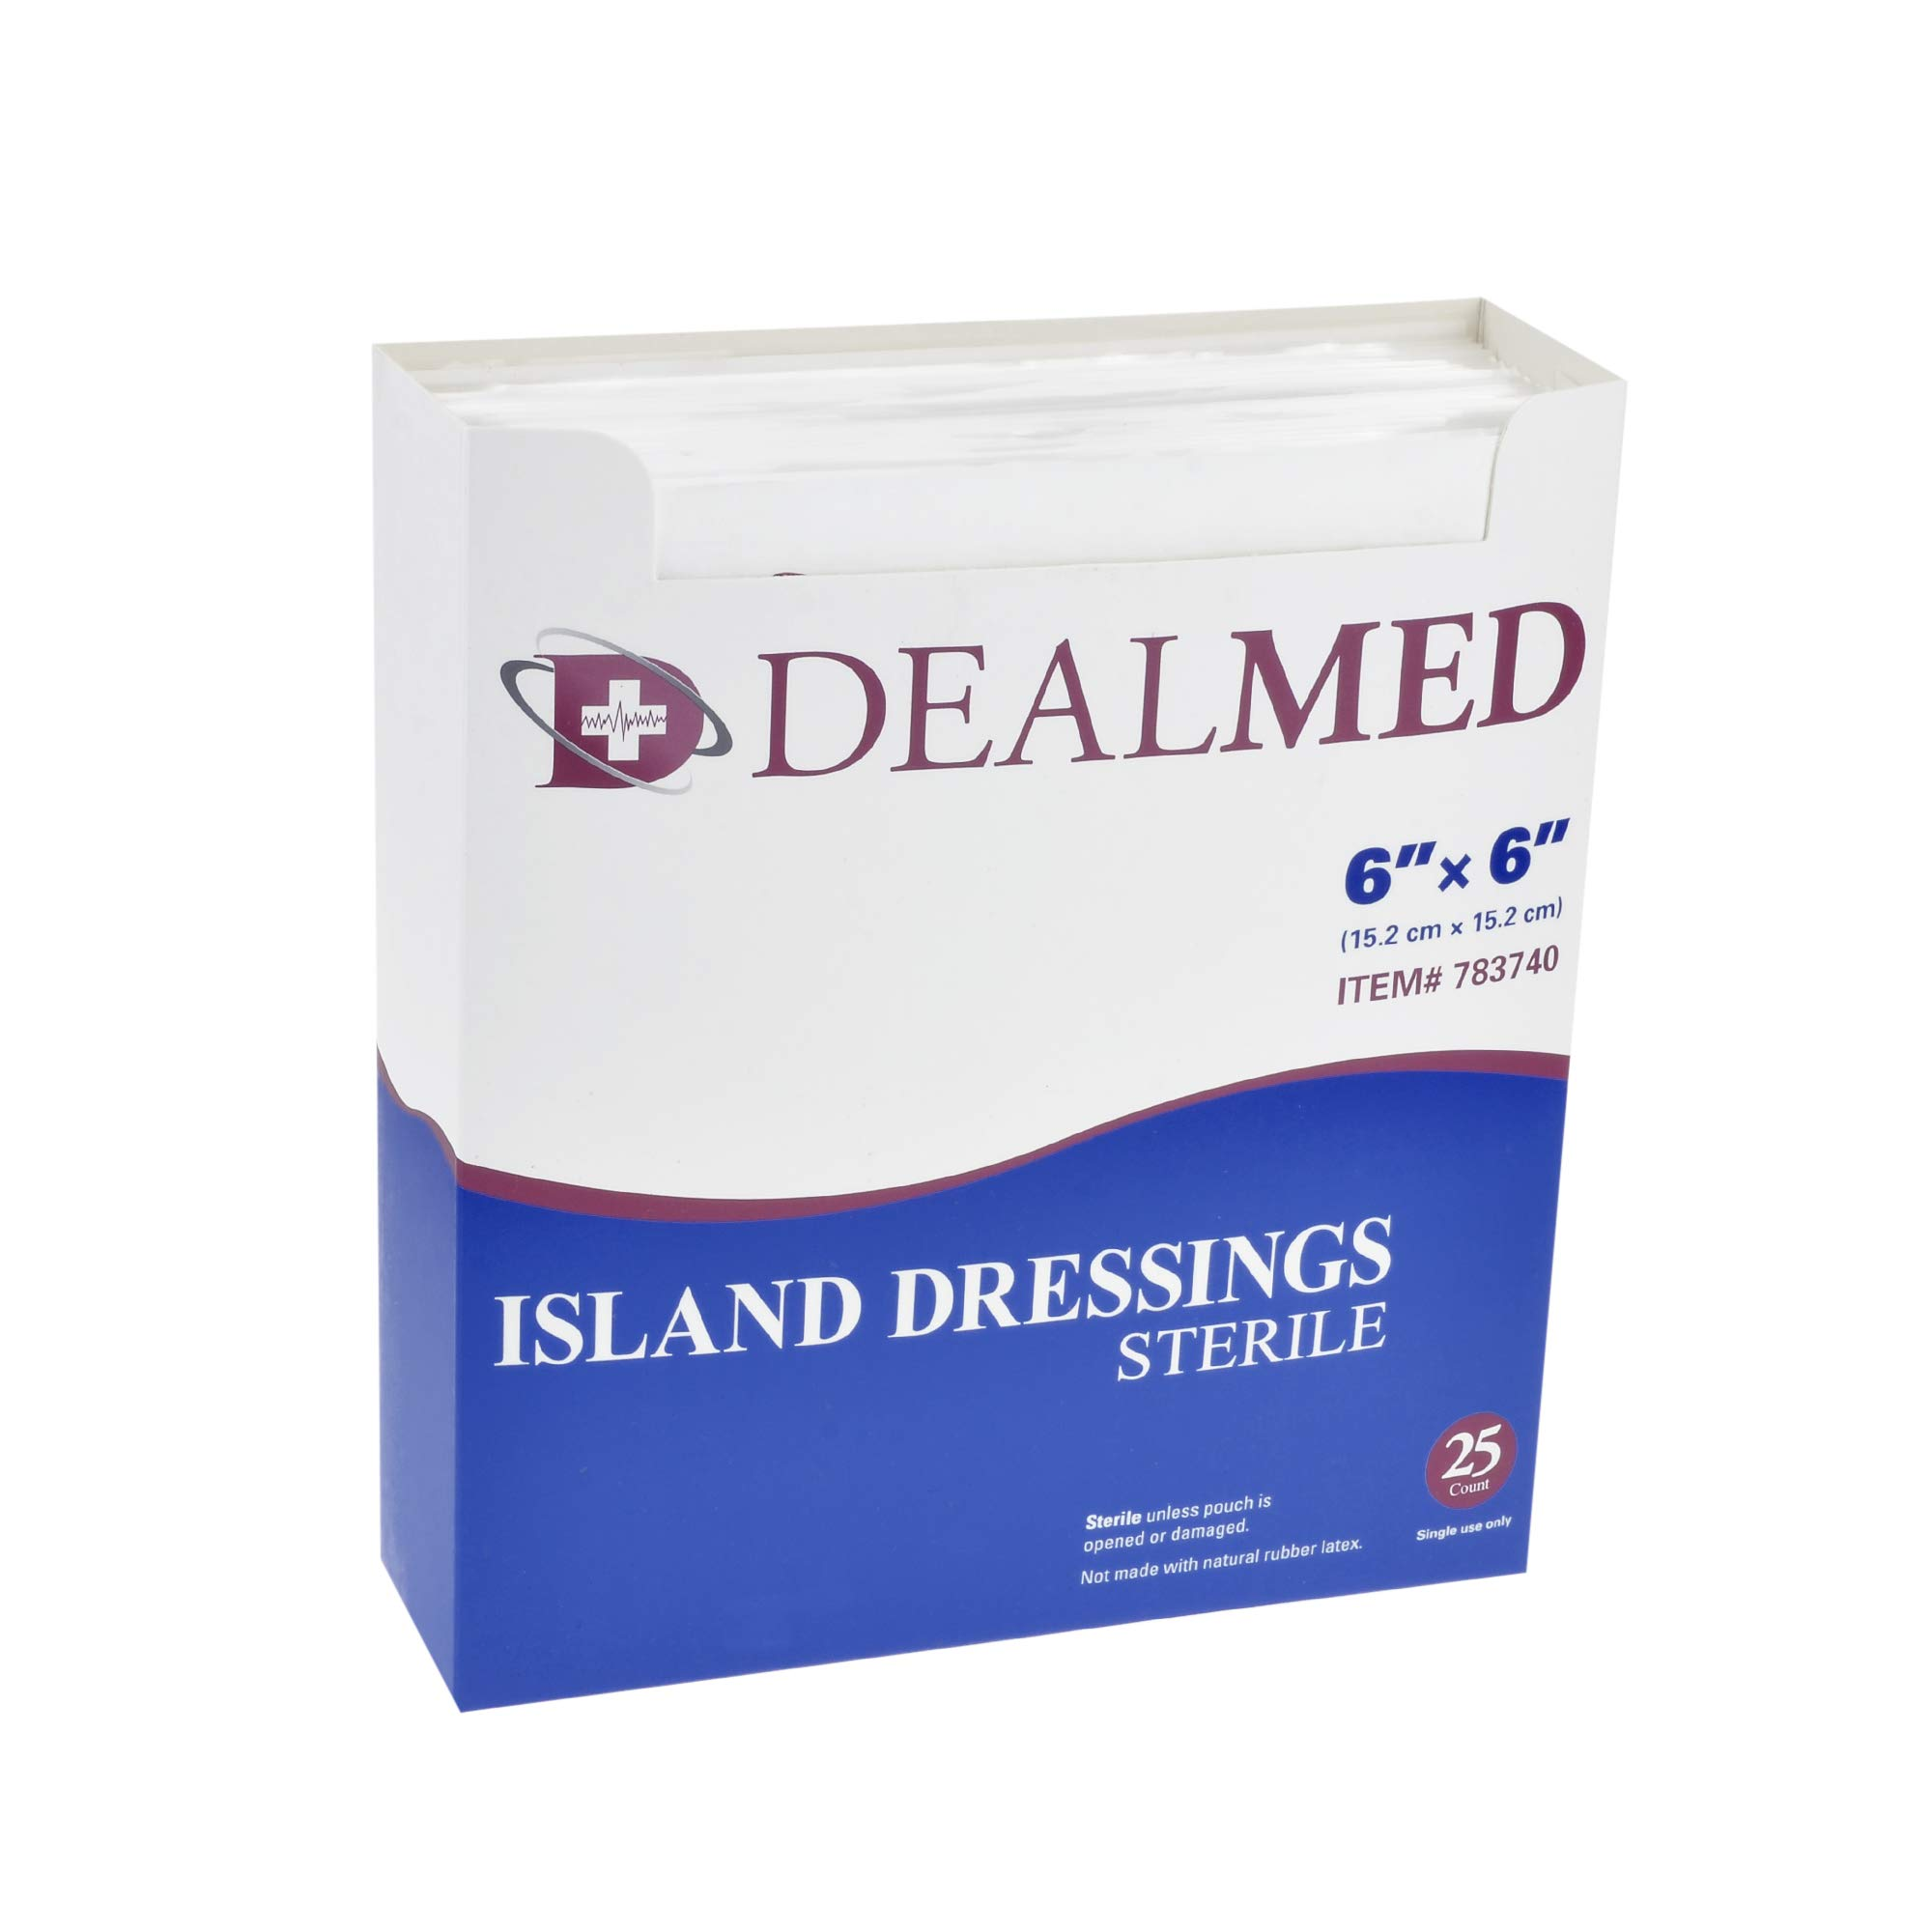 Dealmed Sterile Bordered Gauze Island Dressings, Non-Stick, Latex-Free, 6'' x 6'', 25 Count